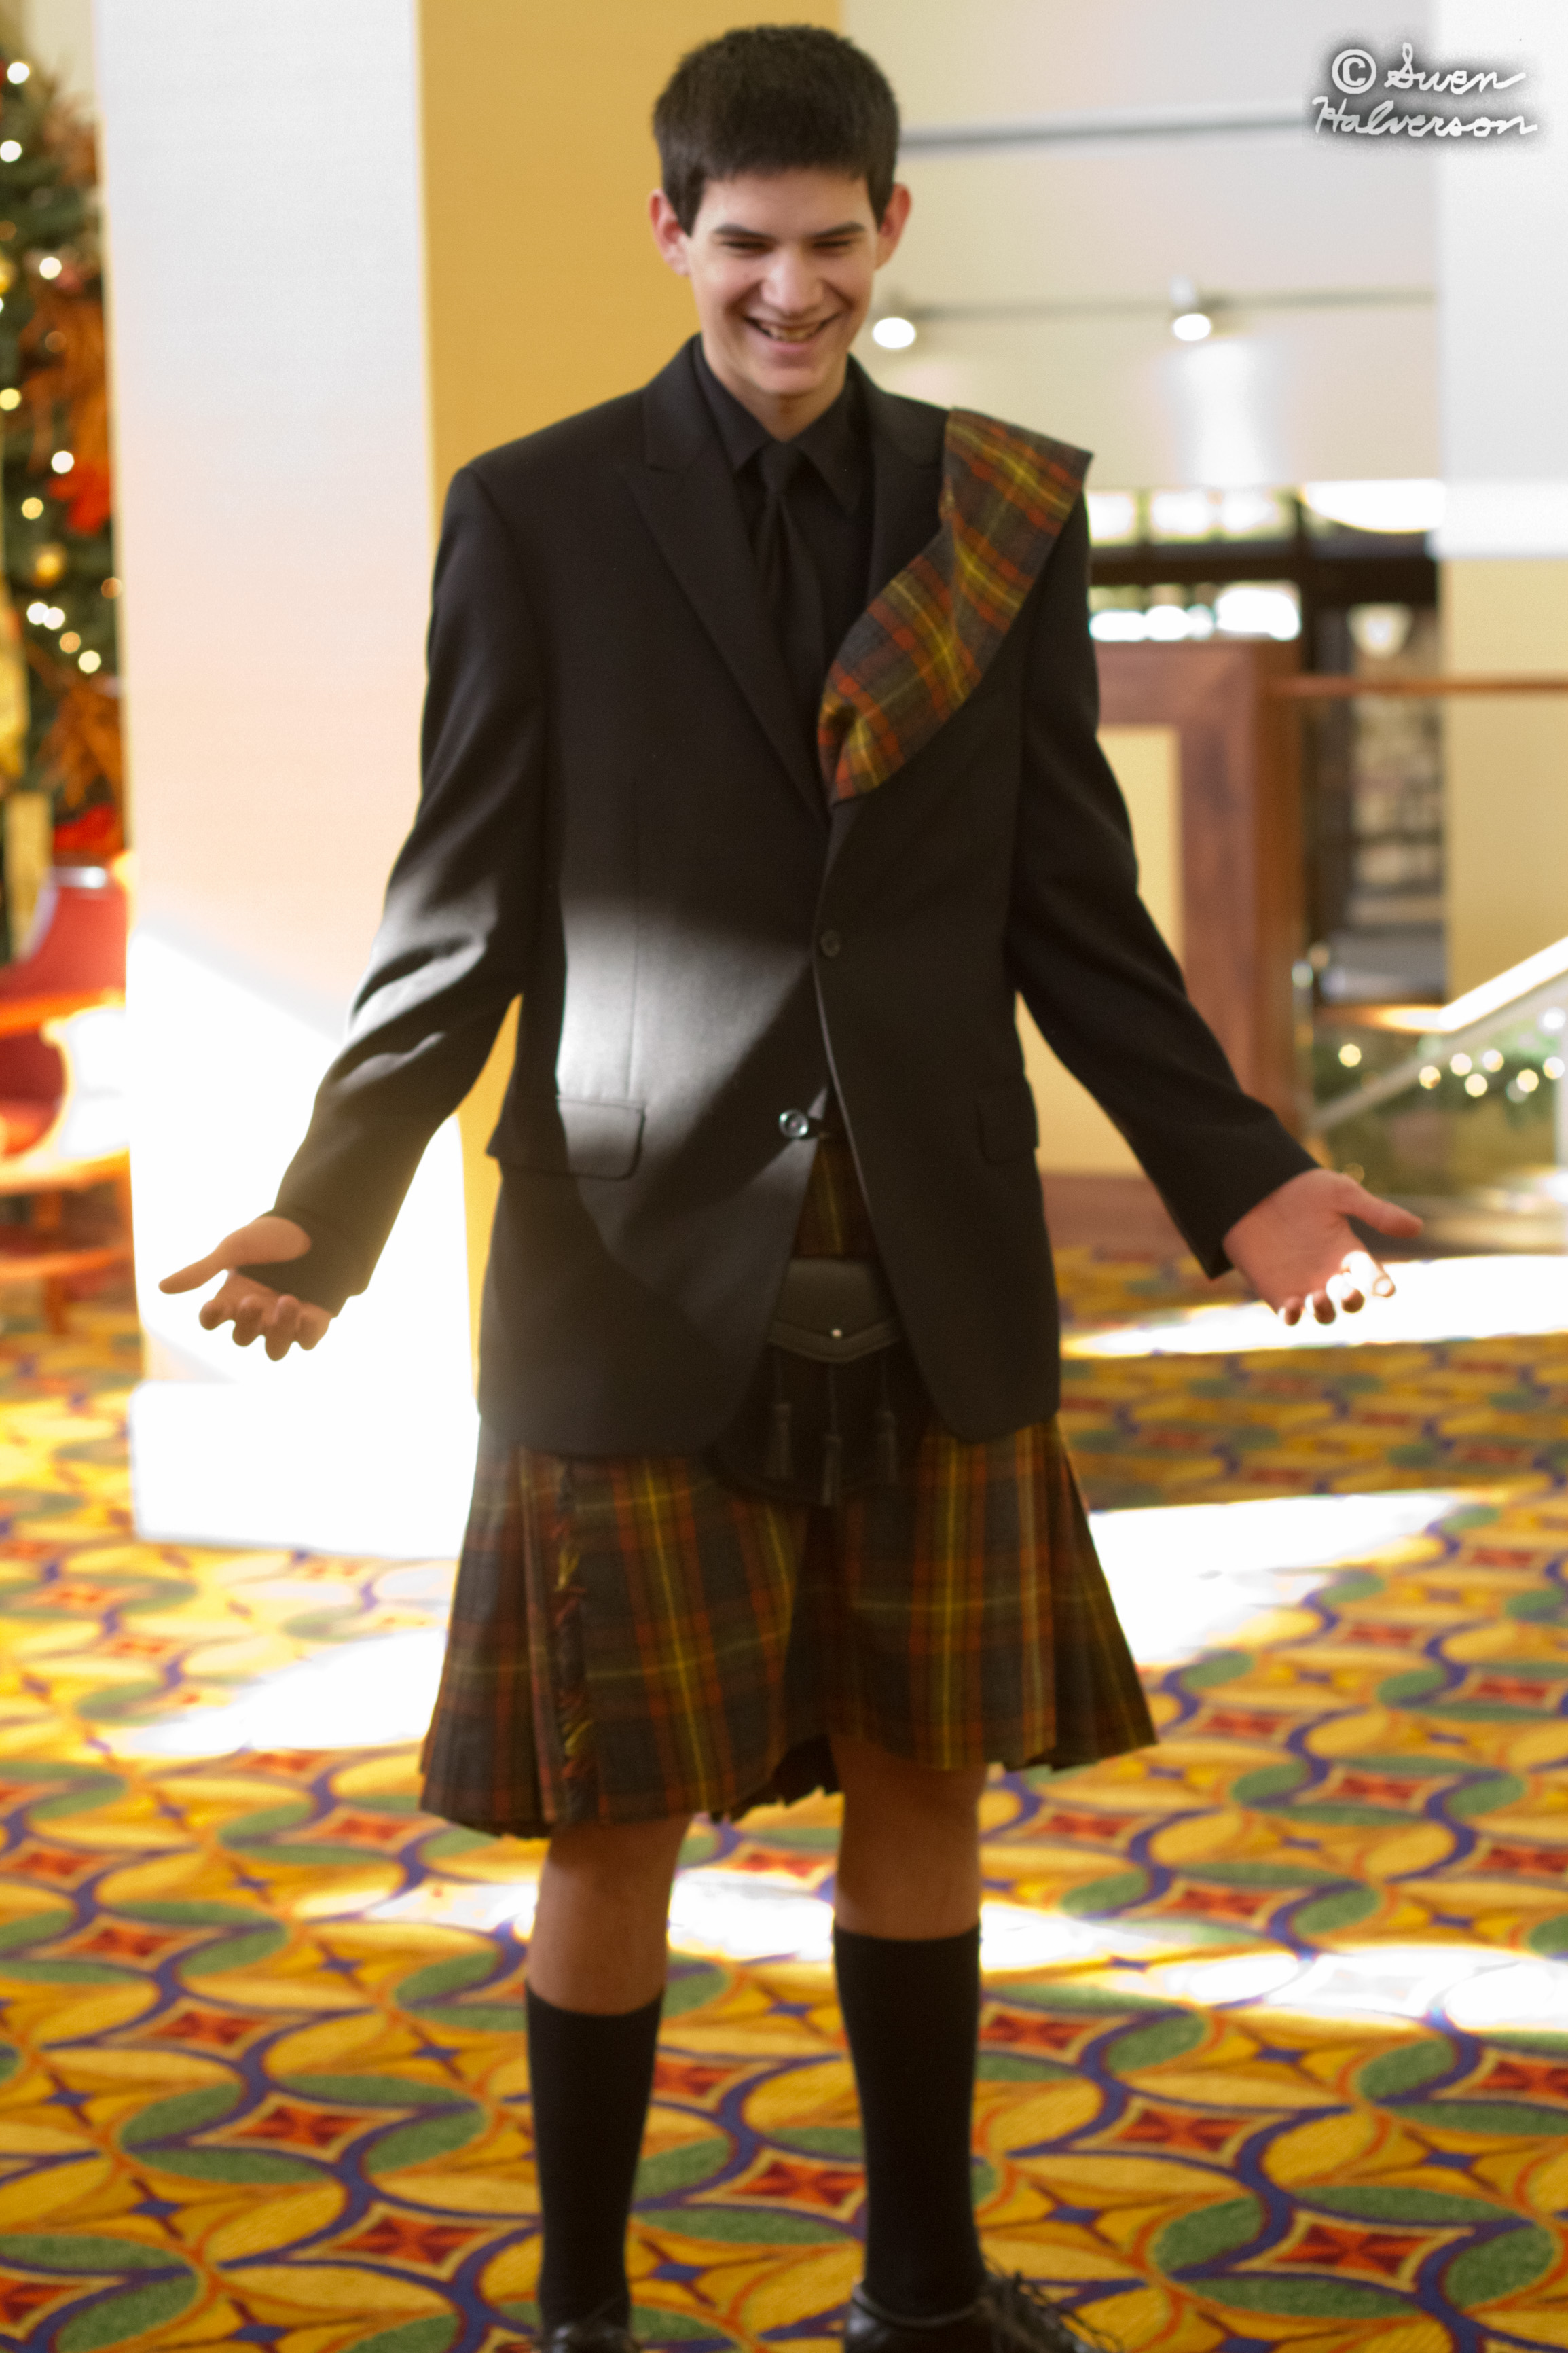 Theme: People <br>Title: Kilts Are Awsome